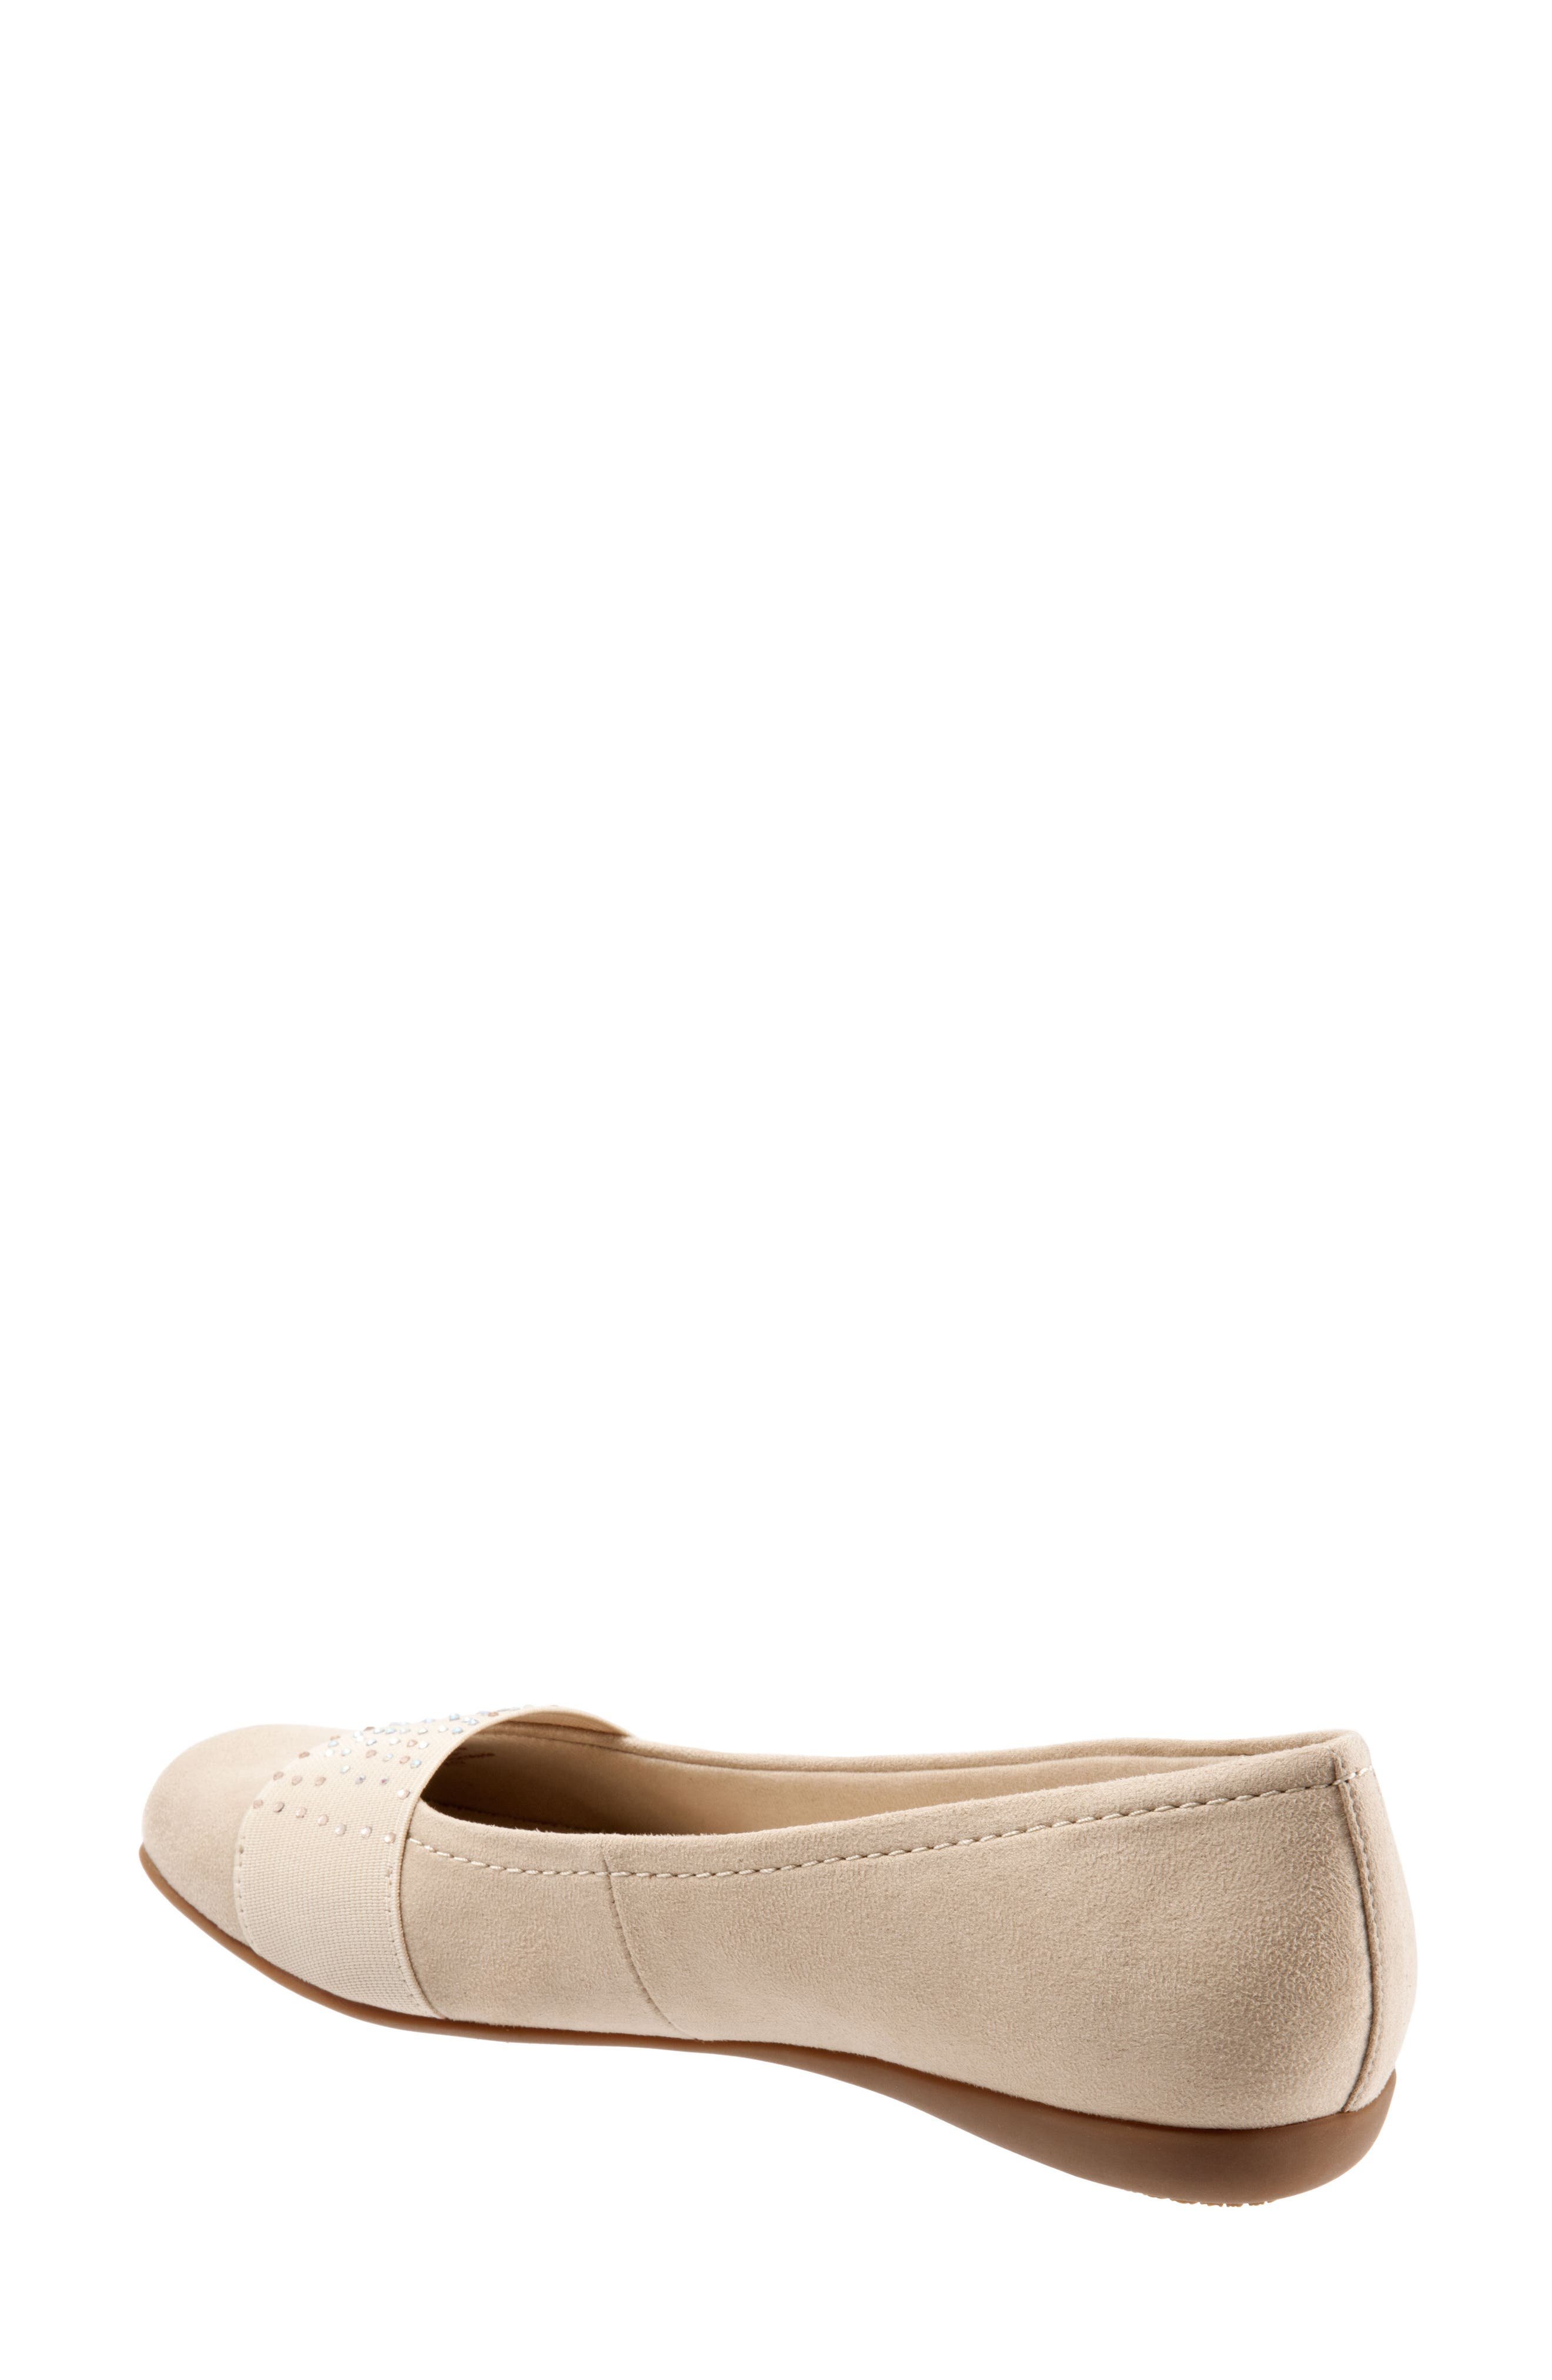 Samantha Flat,                             Alternate thumbnail 2, color,                             Nude Suede